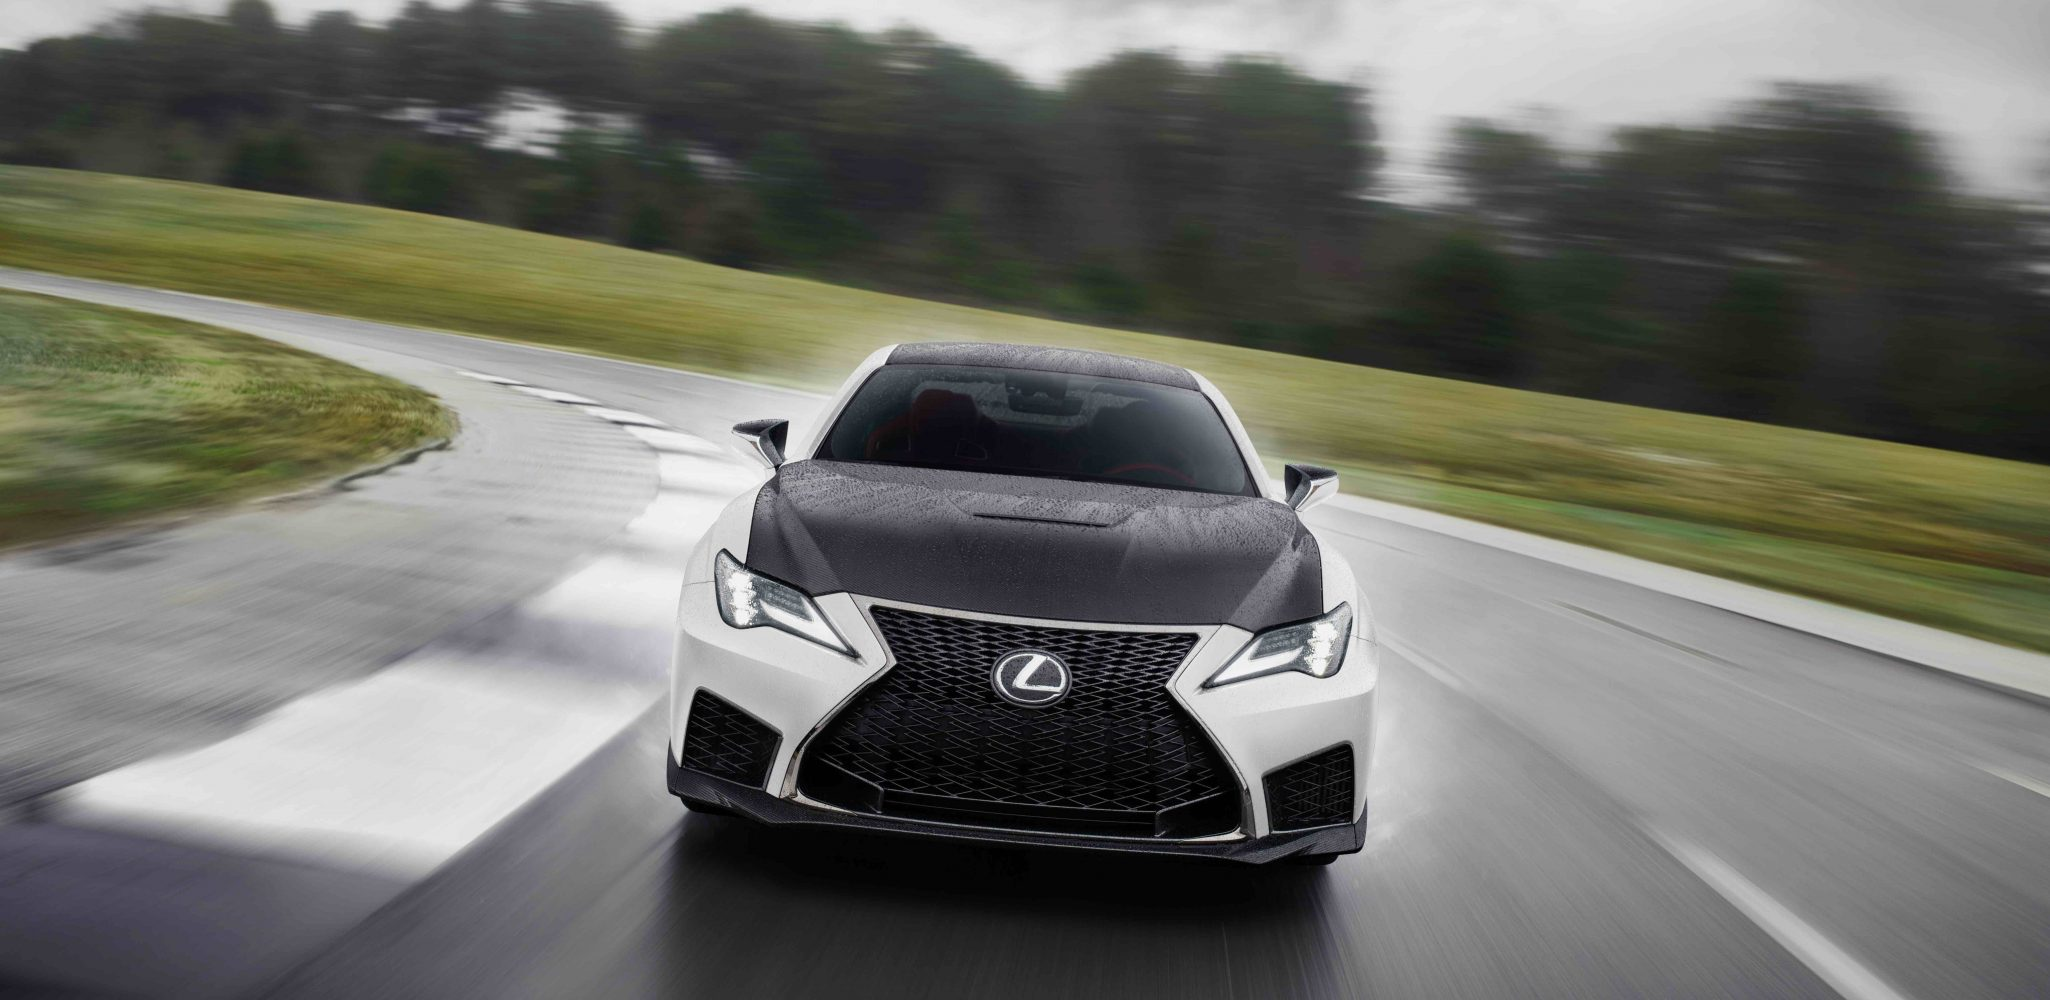 The Ultimate F: 2021 RC F and RC F Fuji Speedway Edition